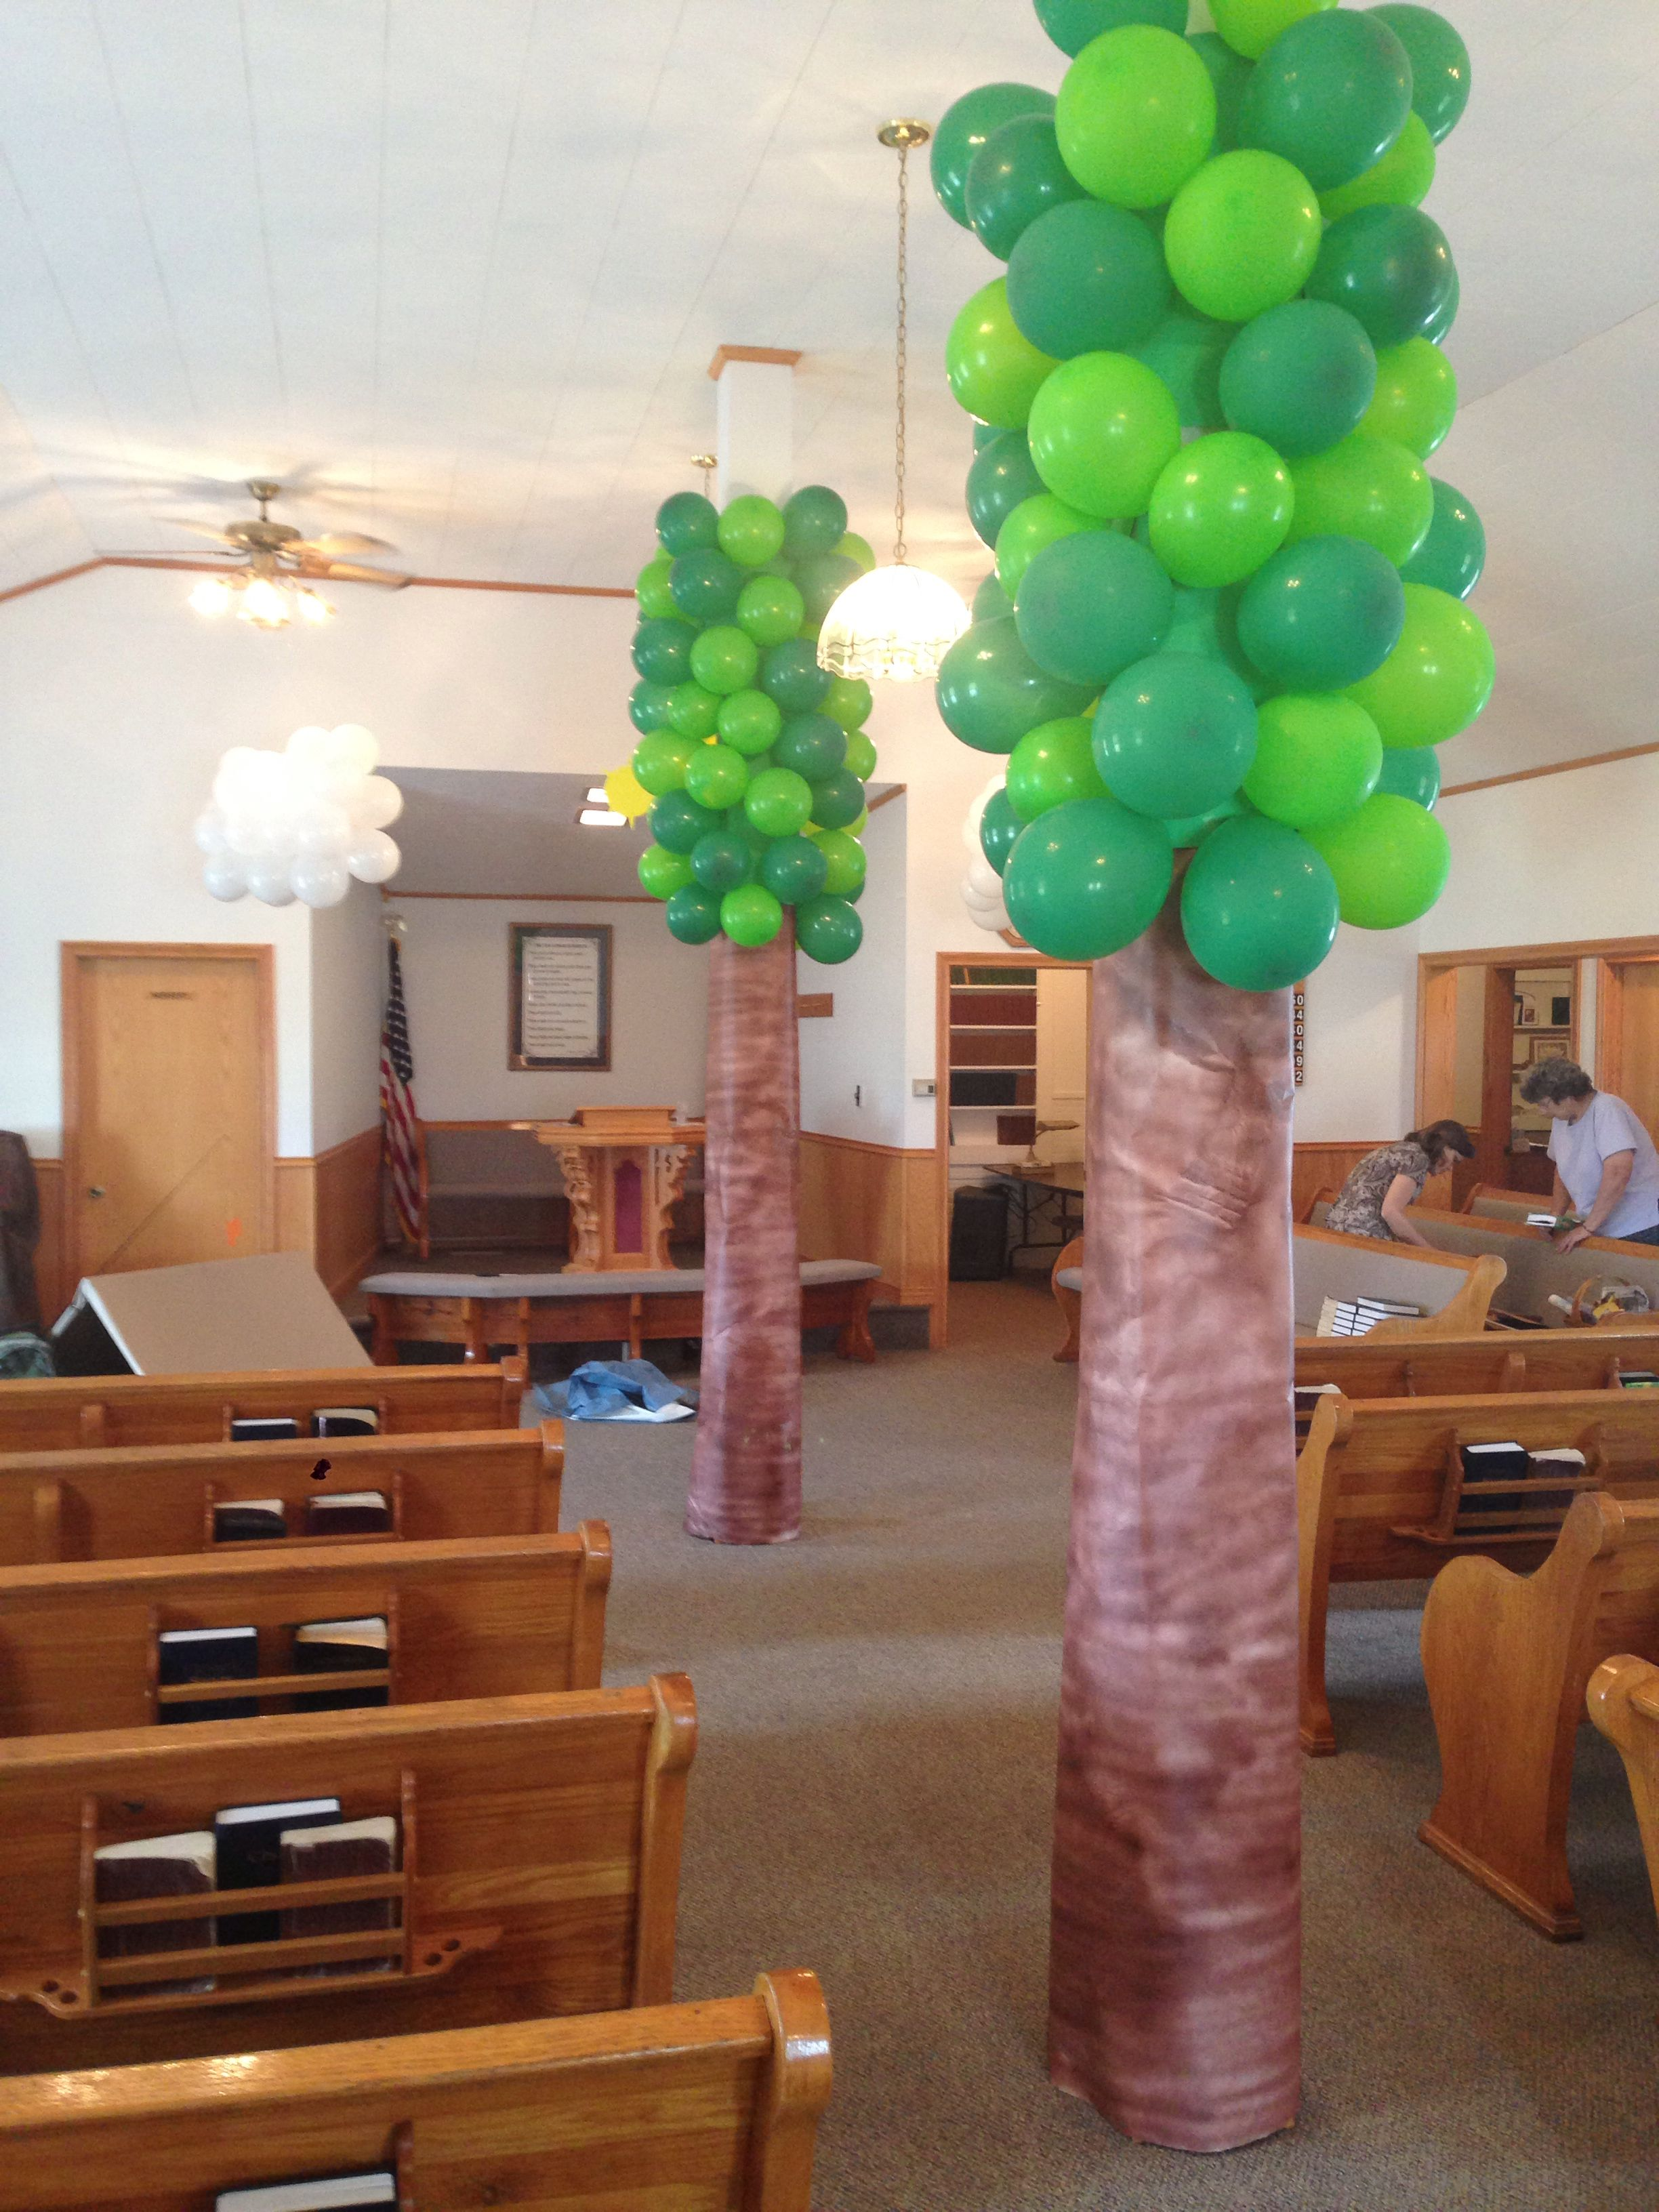 Our backyard Vbs decorations!  Vbs crafts, Camp out vbs, Kids